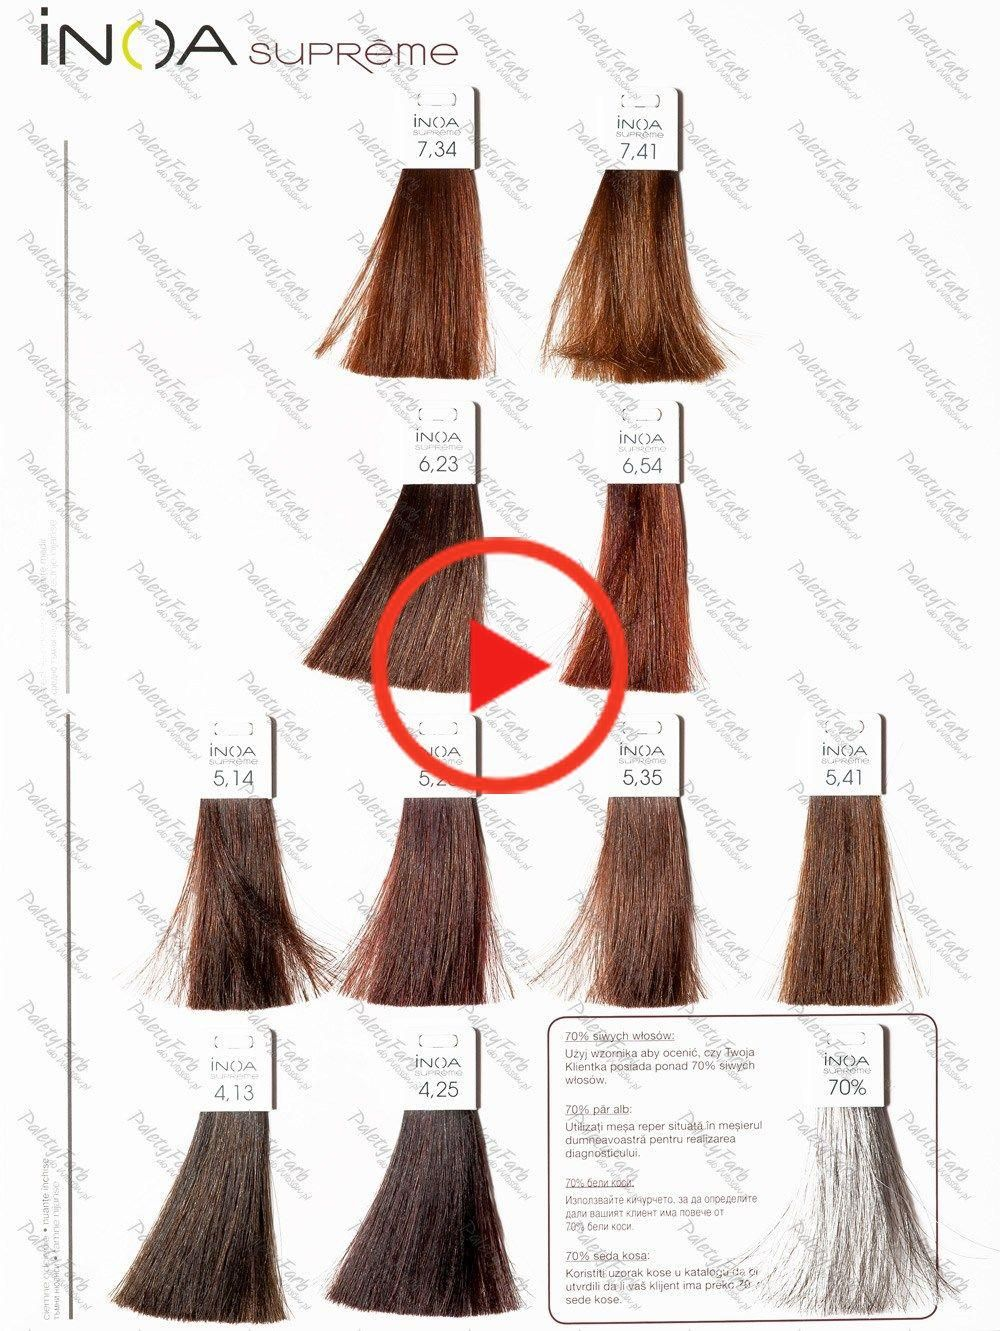 Reasonable Loreal Inoa Supreme Color Chart Goldwell Hair Color Swatches Copper Hair Colour Chart Hair Color Chart Hair Color Swatches Copper Hair Color